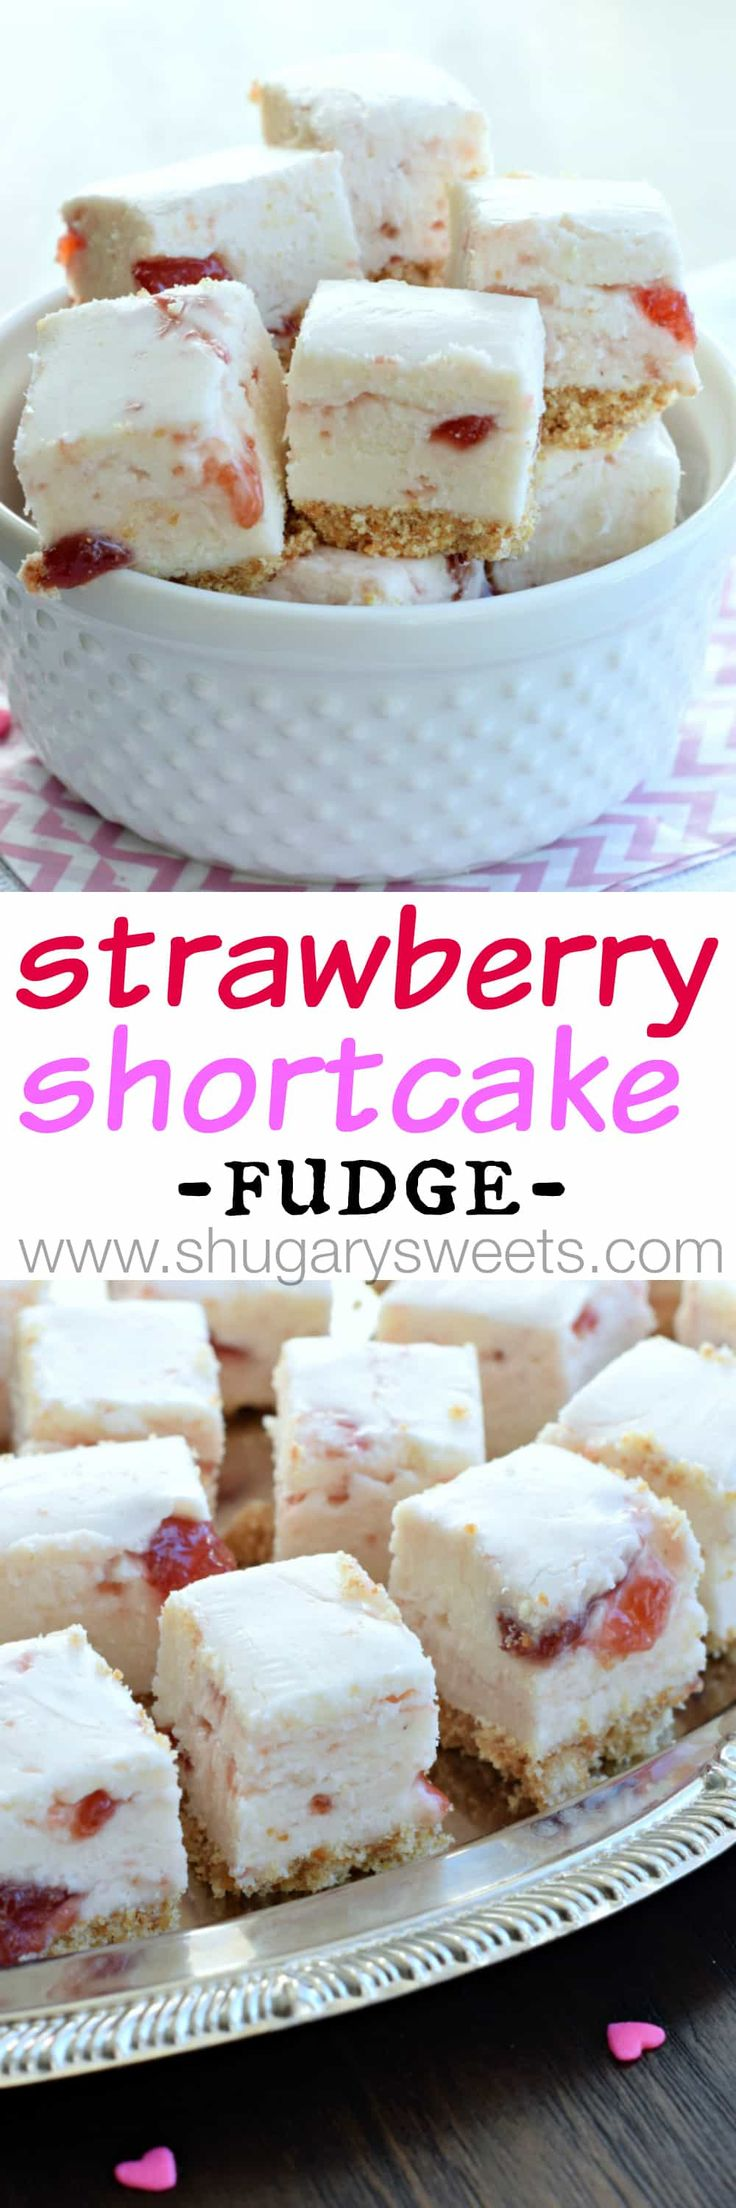 Strawberry Shortcake Fudge: a sweet fudge with a cookie crust, and strawberry preserves swirled into a creamy white chocolate fudge!